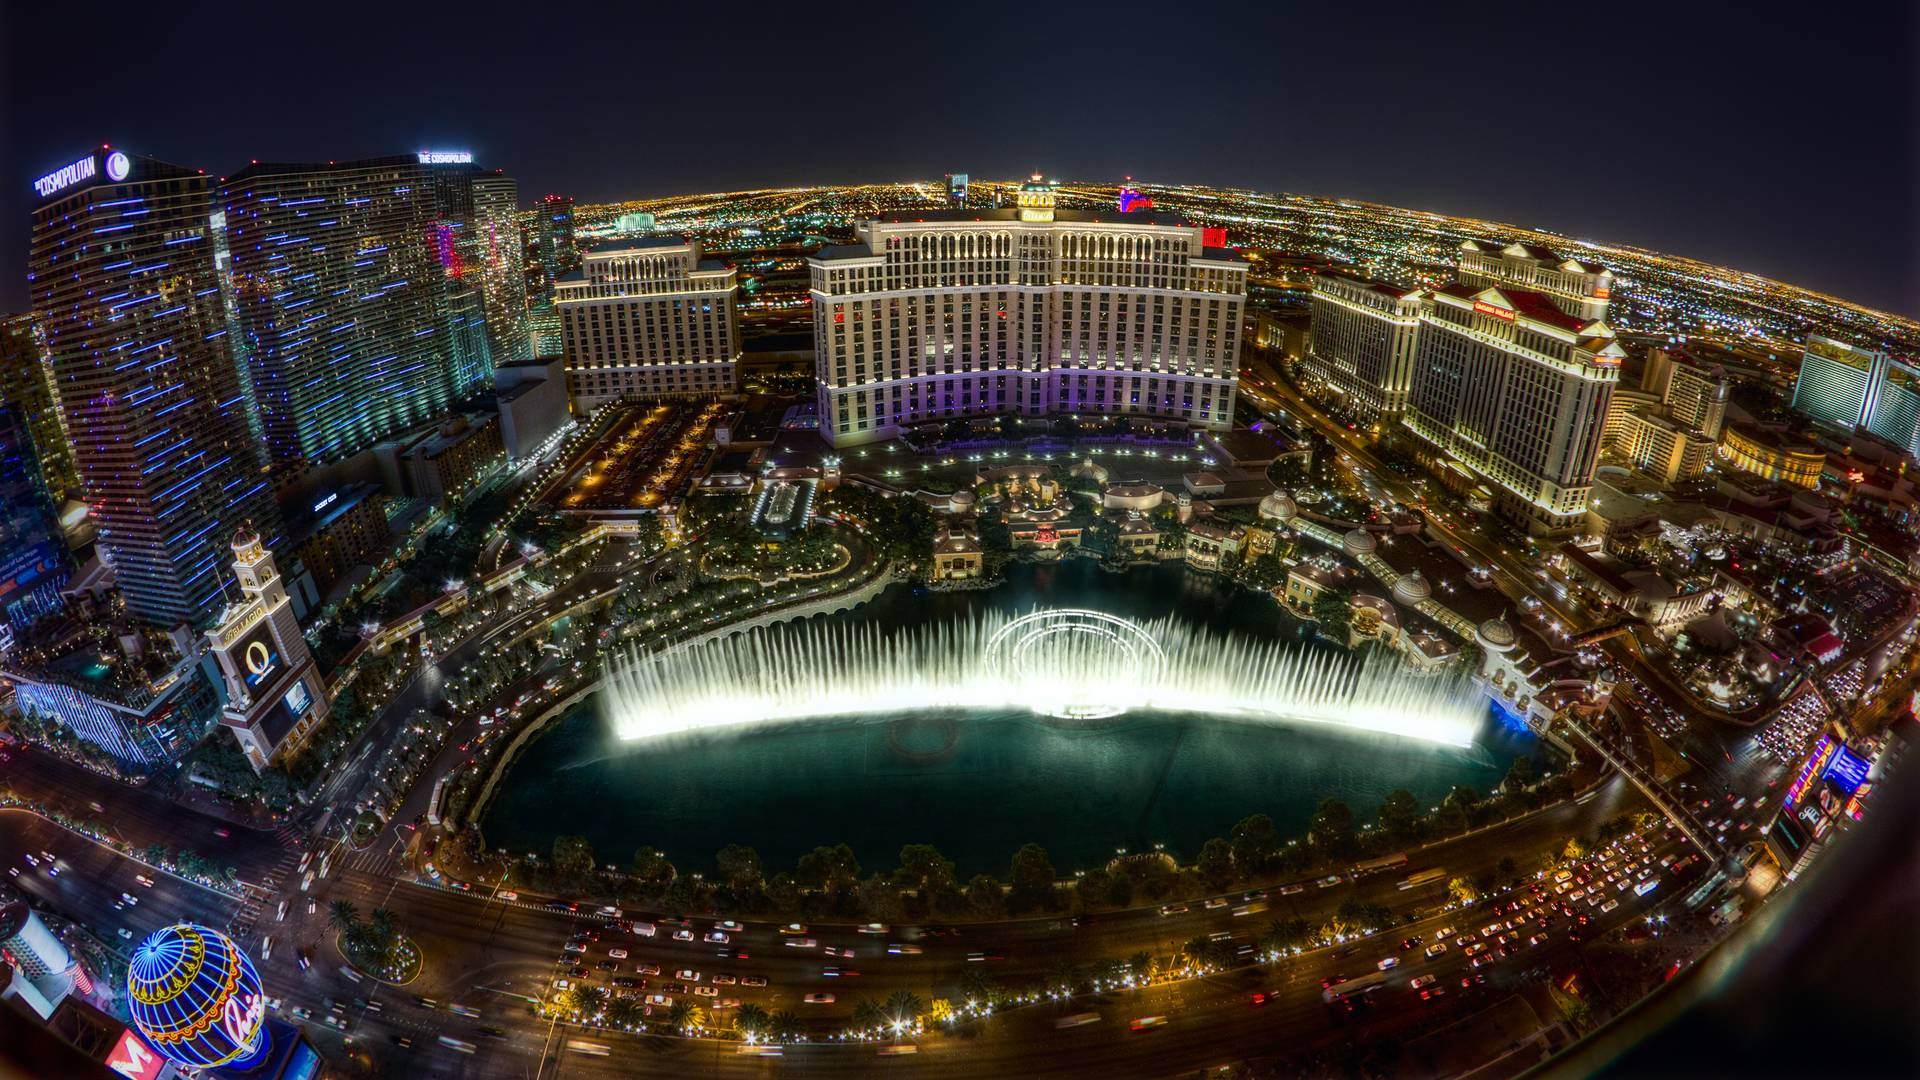 New Cityscapes Las Vegas HD Wallpaper Free Download | HD Wallpapers